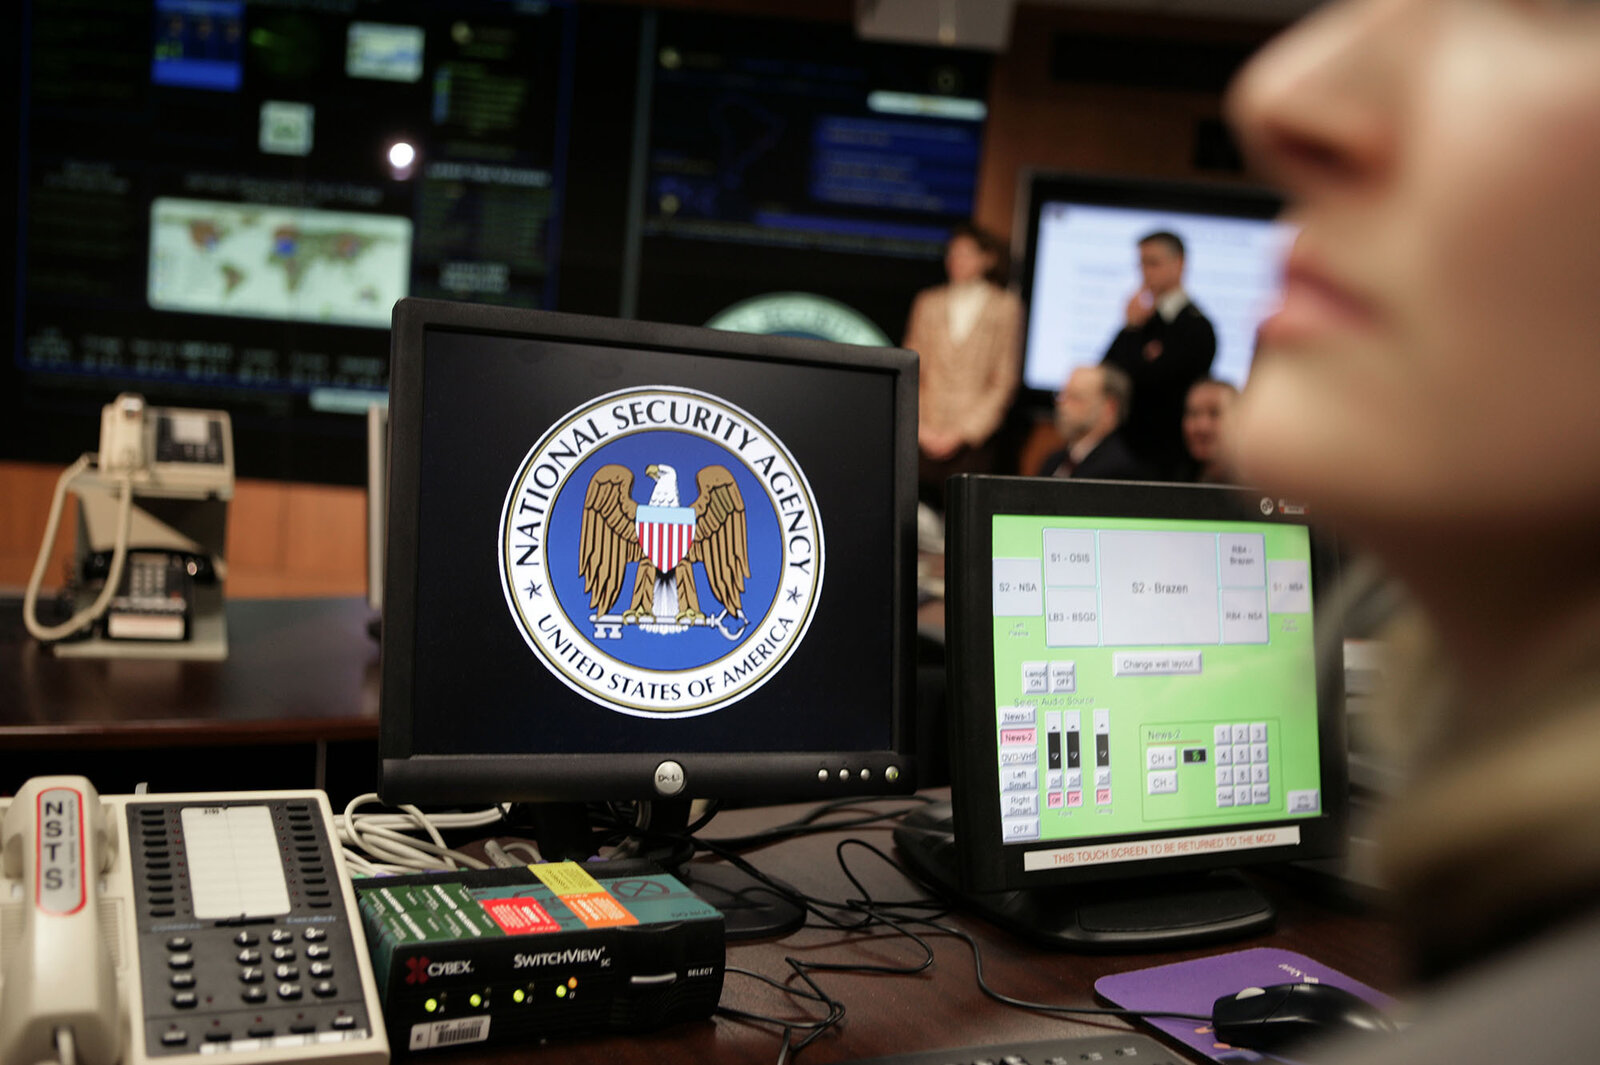 Not many students have the cutting-edge cybersecurity skills the NSA needs, recruiters say. And these days industry is paying top dollar for talent.